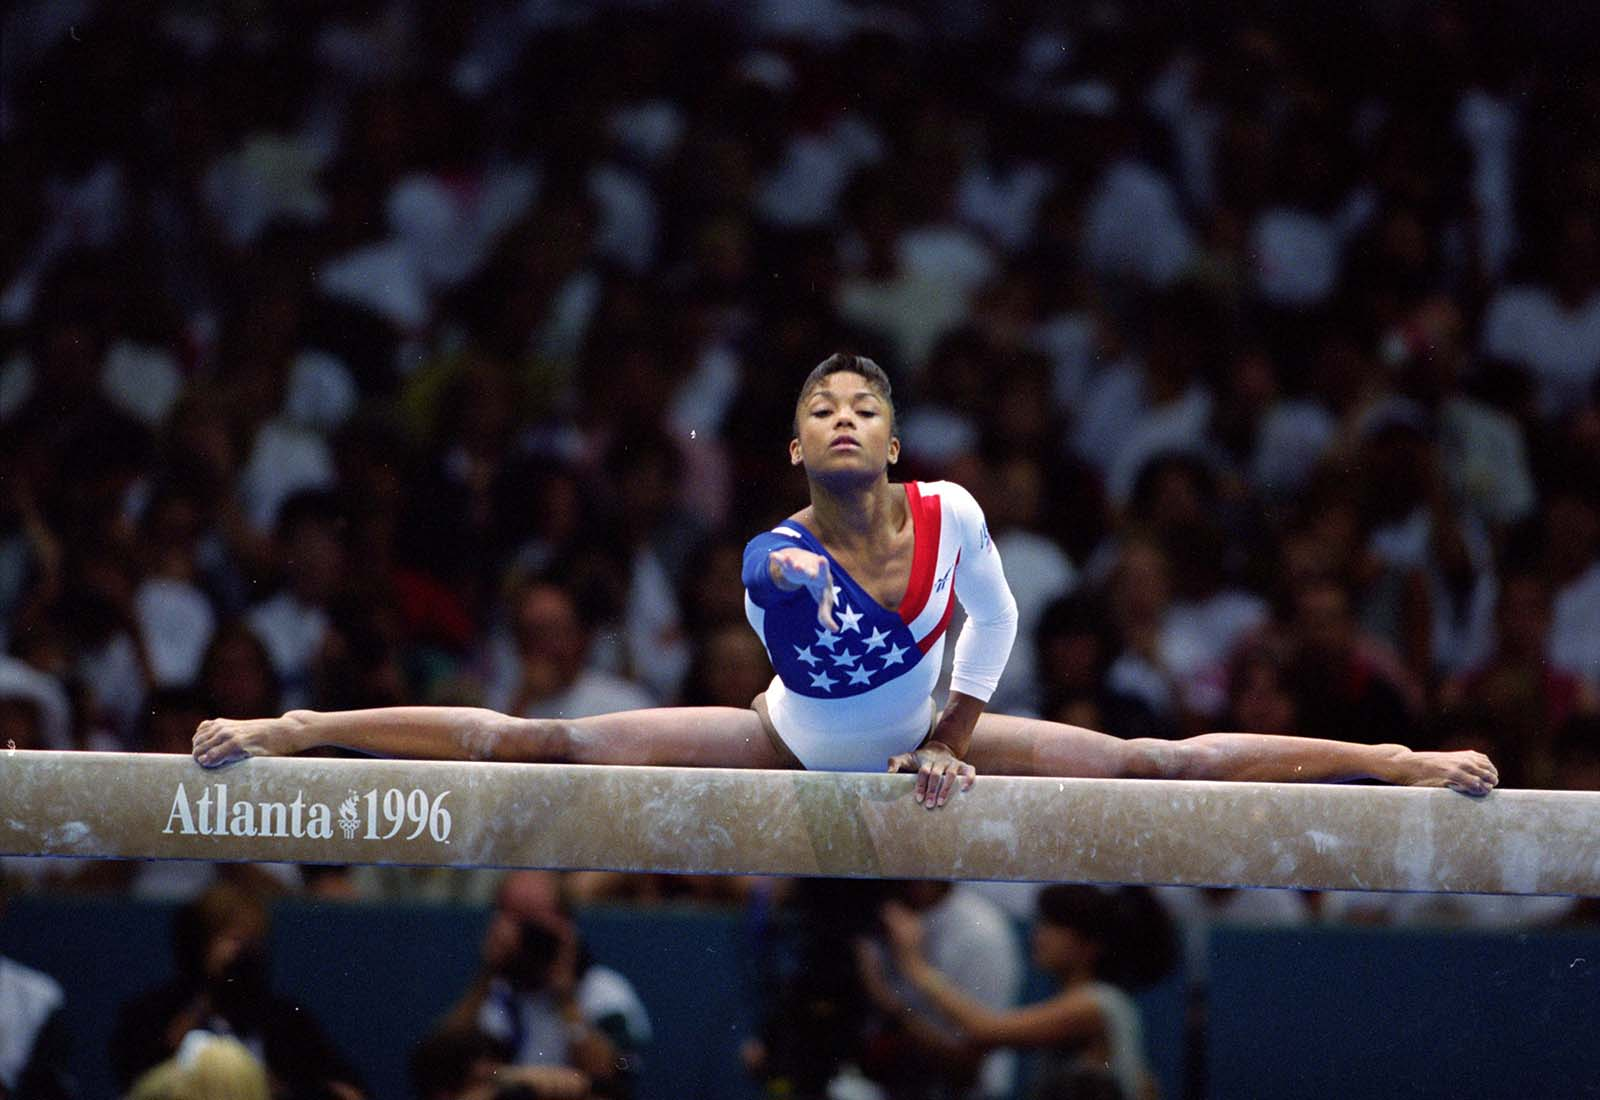 American gymnast Dominique Dawes is pictured during the 1996 Olympic Games in Atlanta, Georgia.